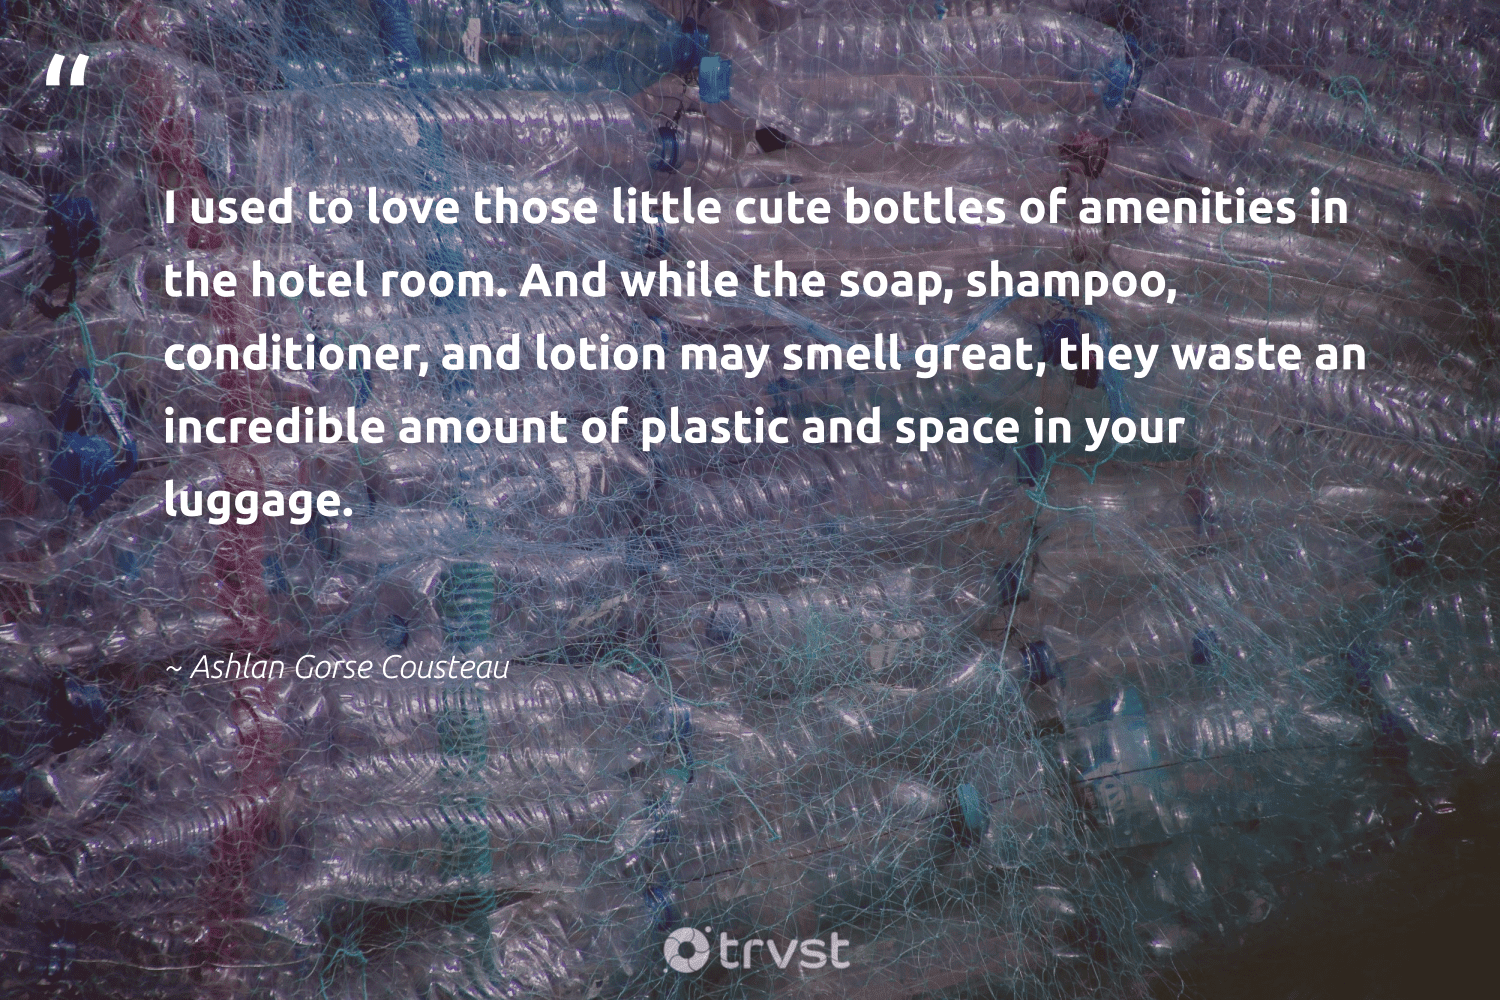 """""""I used to love those little cute bottles of amenities in the hotel room. And while the soap, shampoo, conditioner, and lotion may smell great, they waste an incredible amount of plastic and space in your luggage.""""  - Ashlan Gorse Cousteau #trvst #quotes #plasticwaste #love #waste #plastic #bringyourownbag #wecandobetter #sustainableliving #dotherightthing #microplastic #takeaction"""